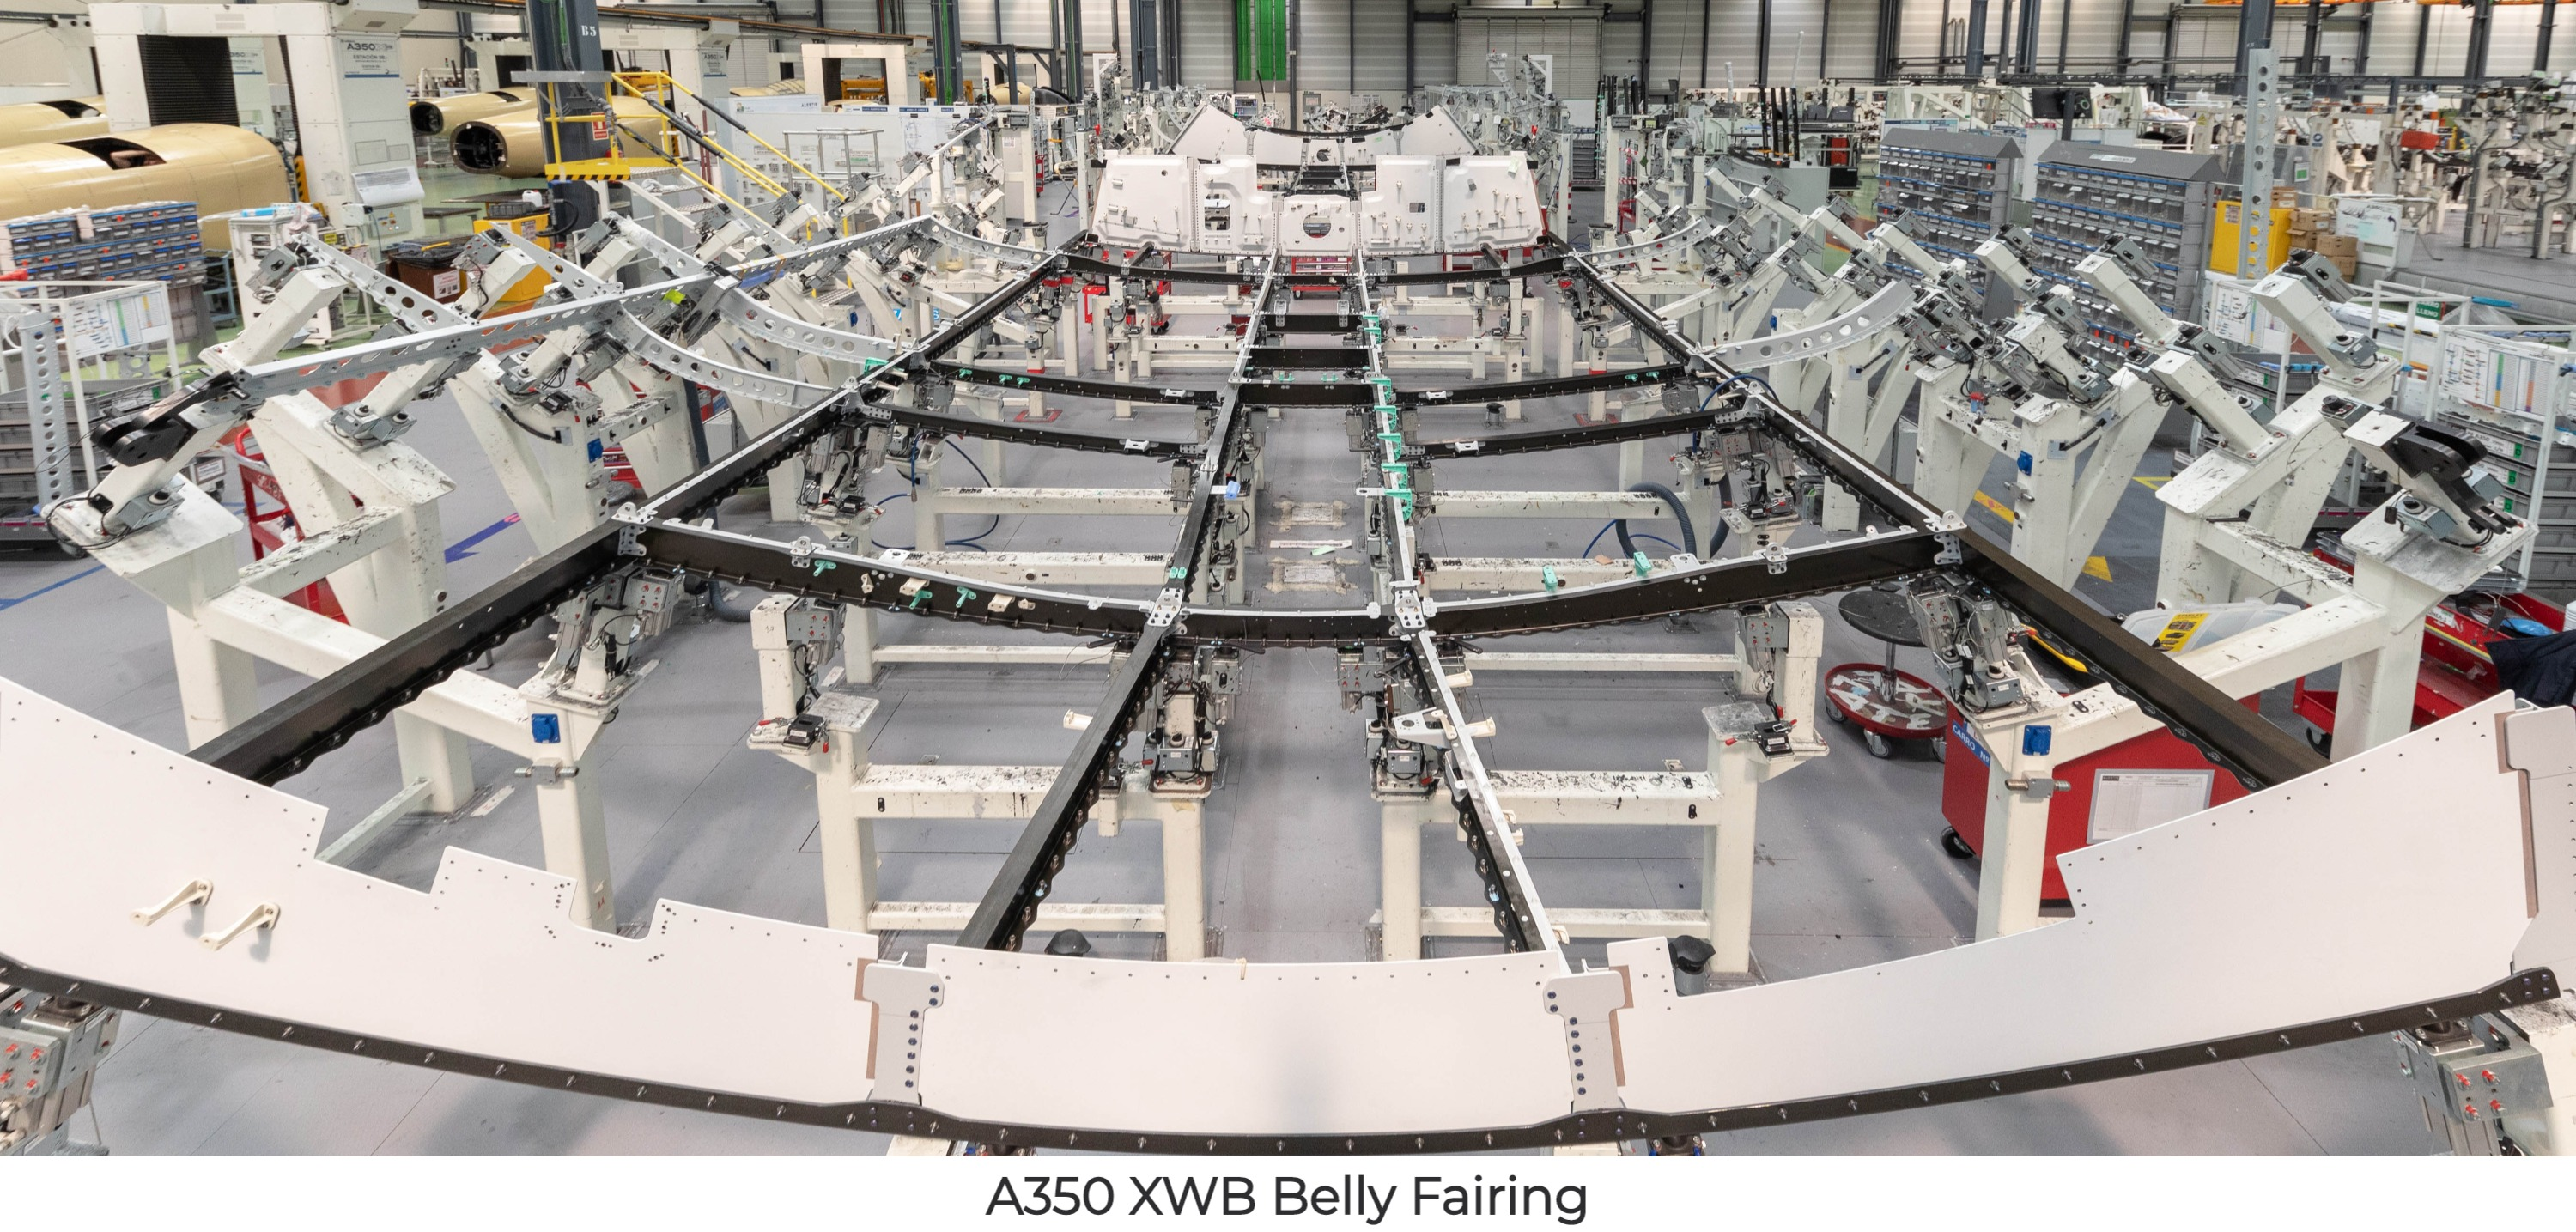 A350 XWB Belly Fairing